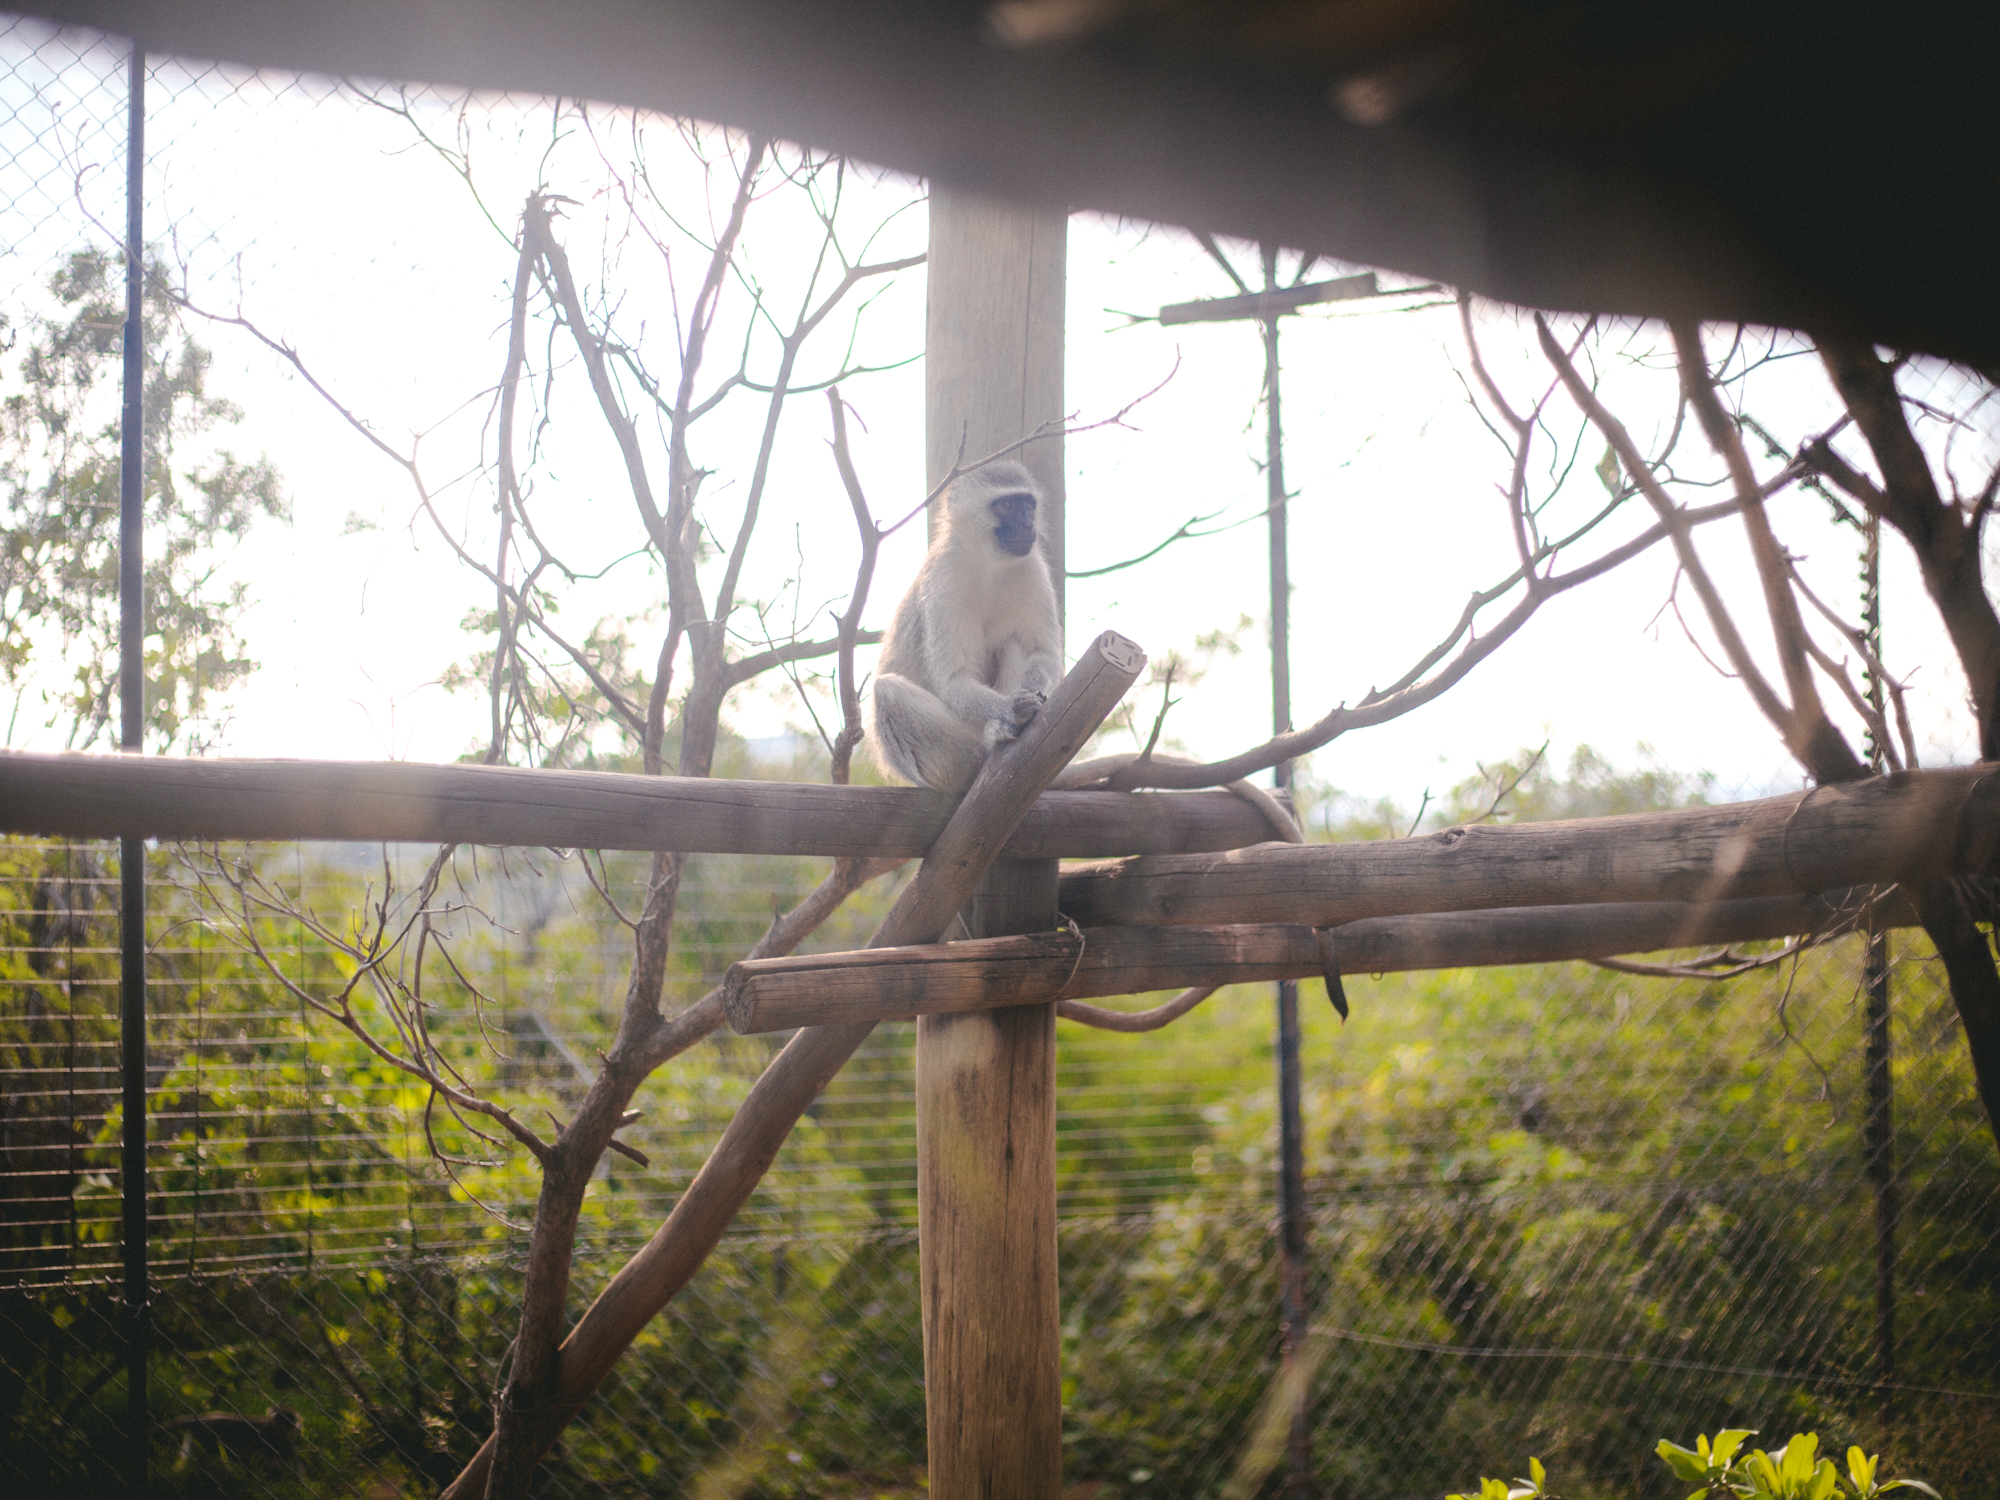 A vervet hangs out on some branches in an enclosure.